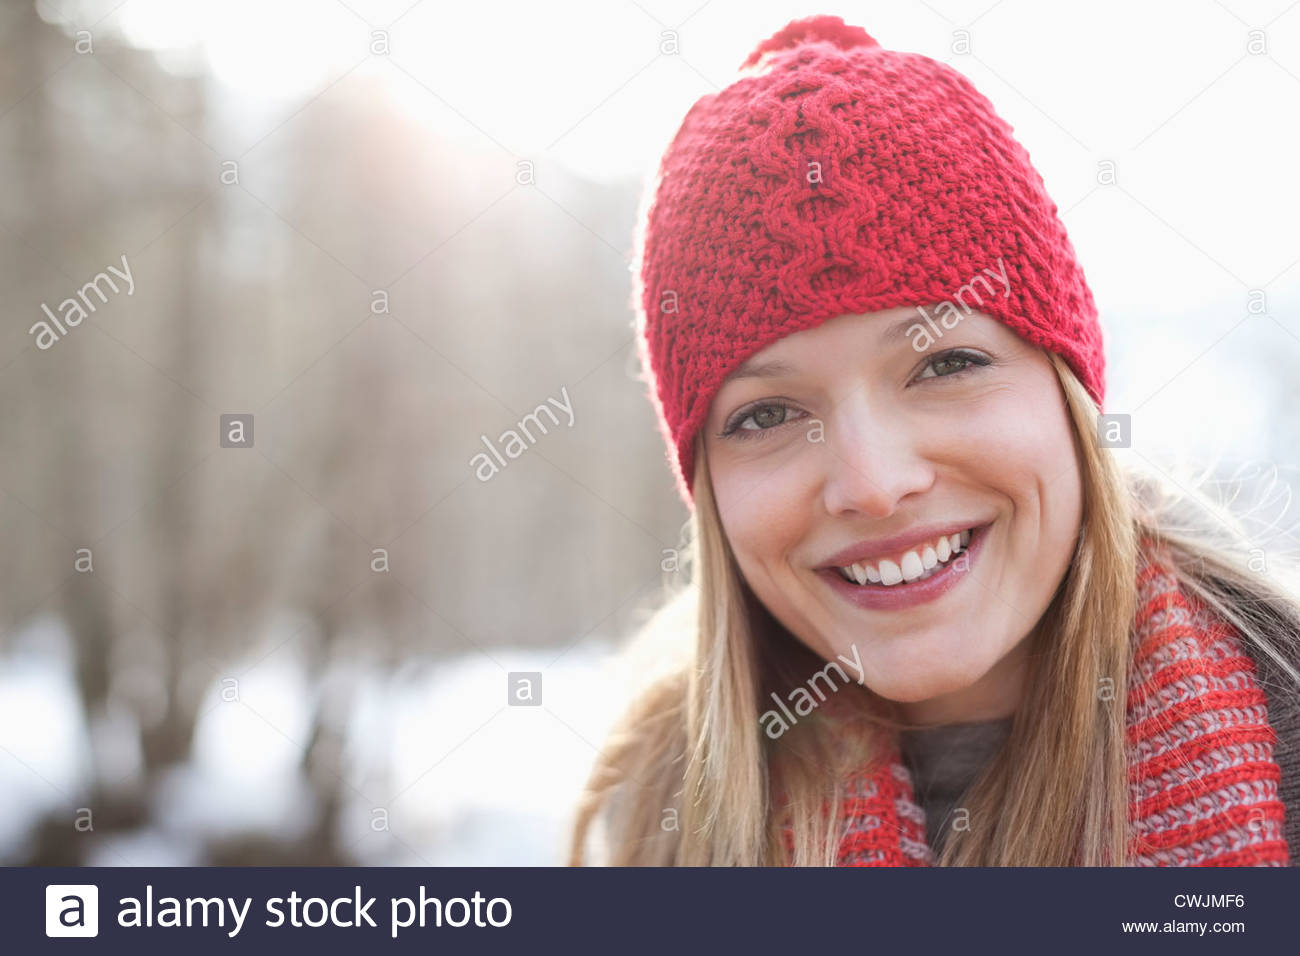 Close up portrait of smiling woman wearing red knit hat - Stock Image